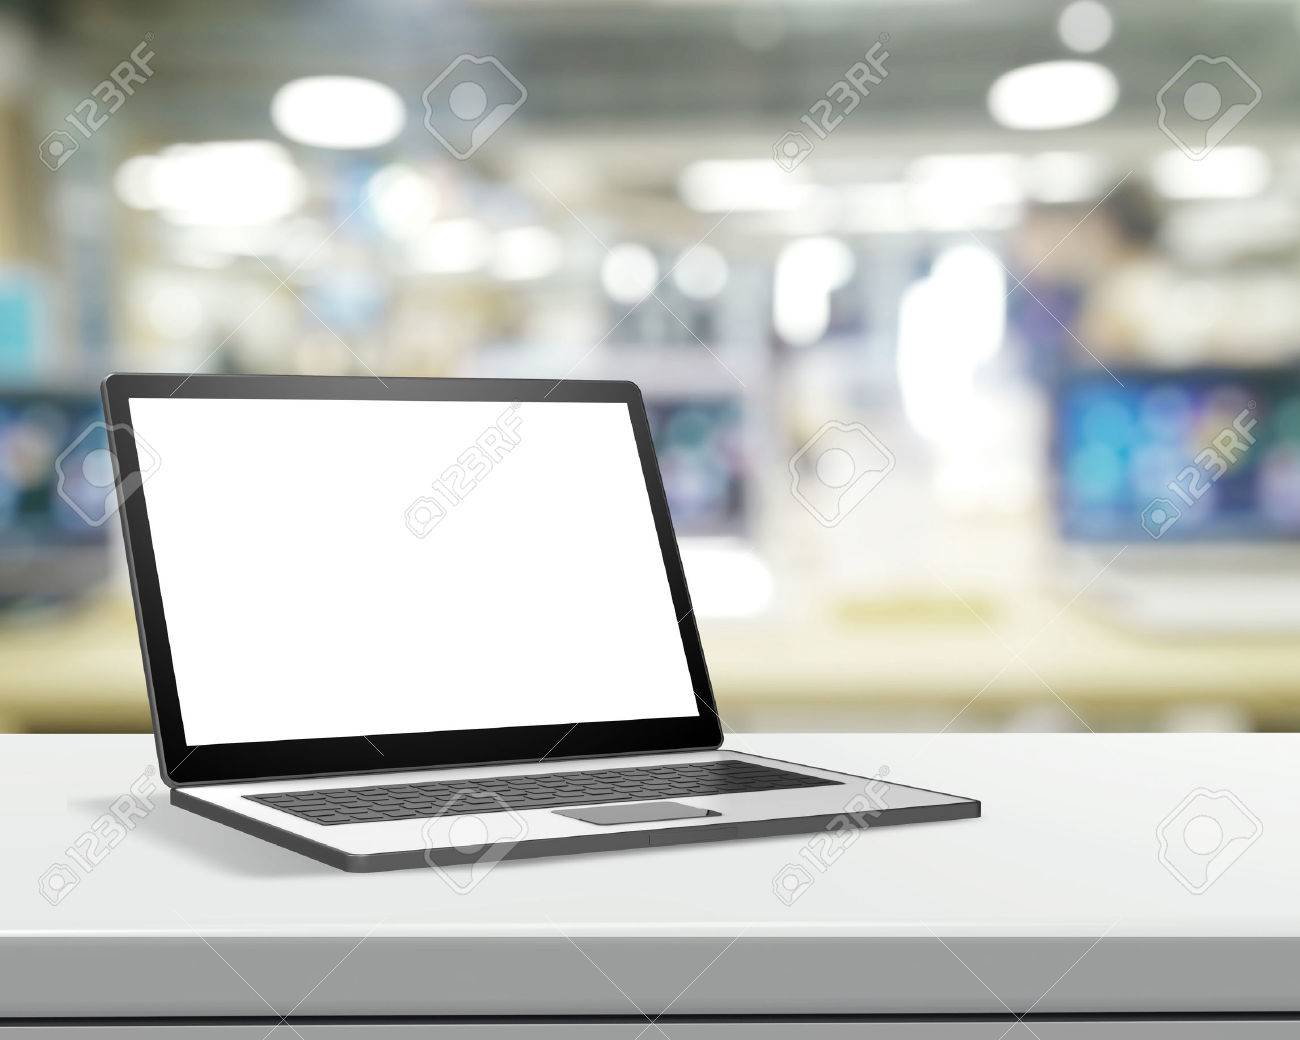 3d Laptop with blank screen on laminate table and blurred background Standard-Bild - 37015418